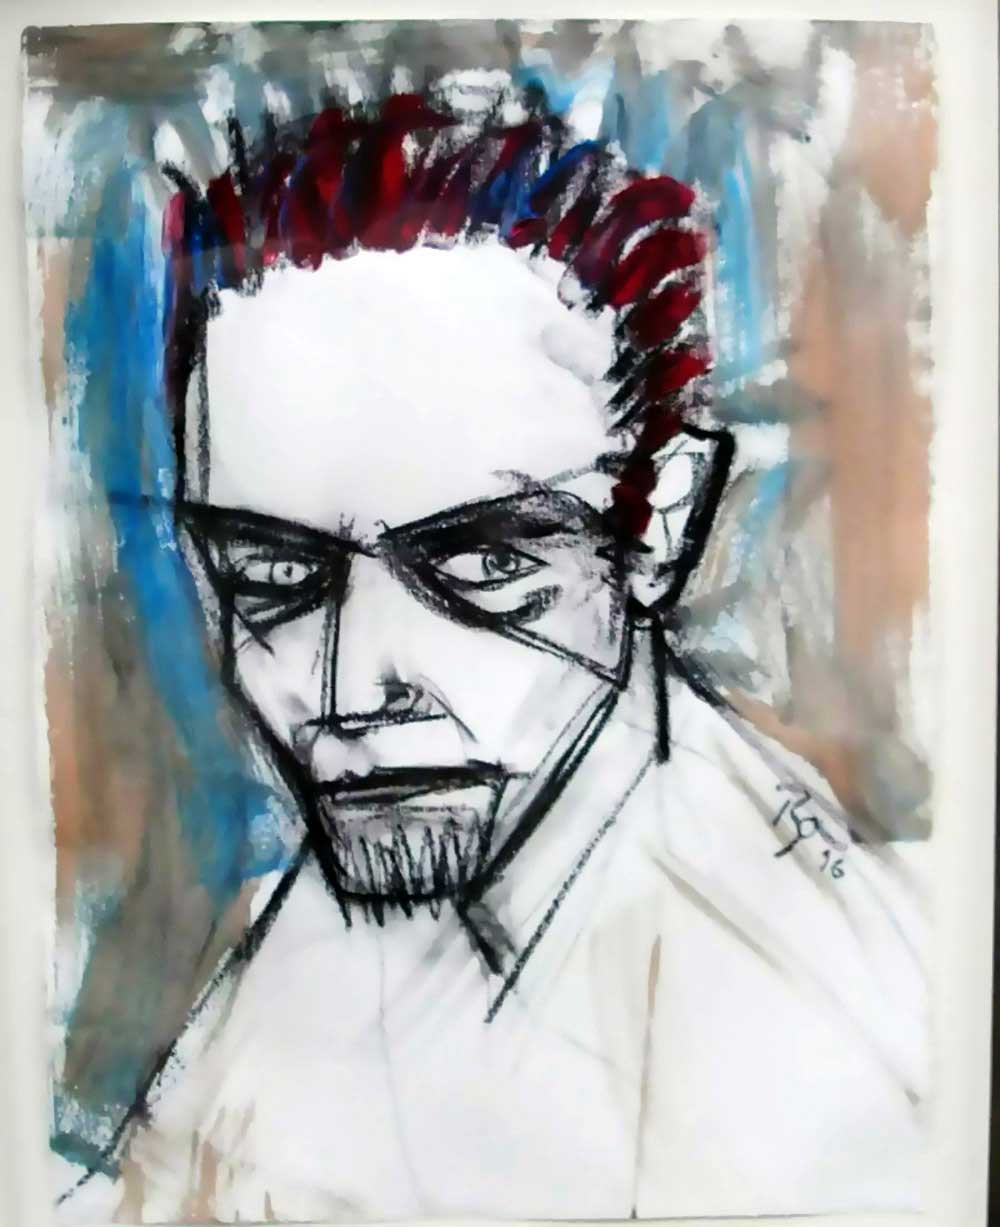 Paintings By David Bowie